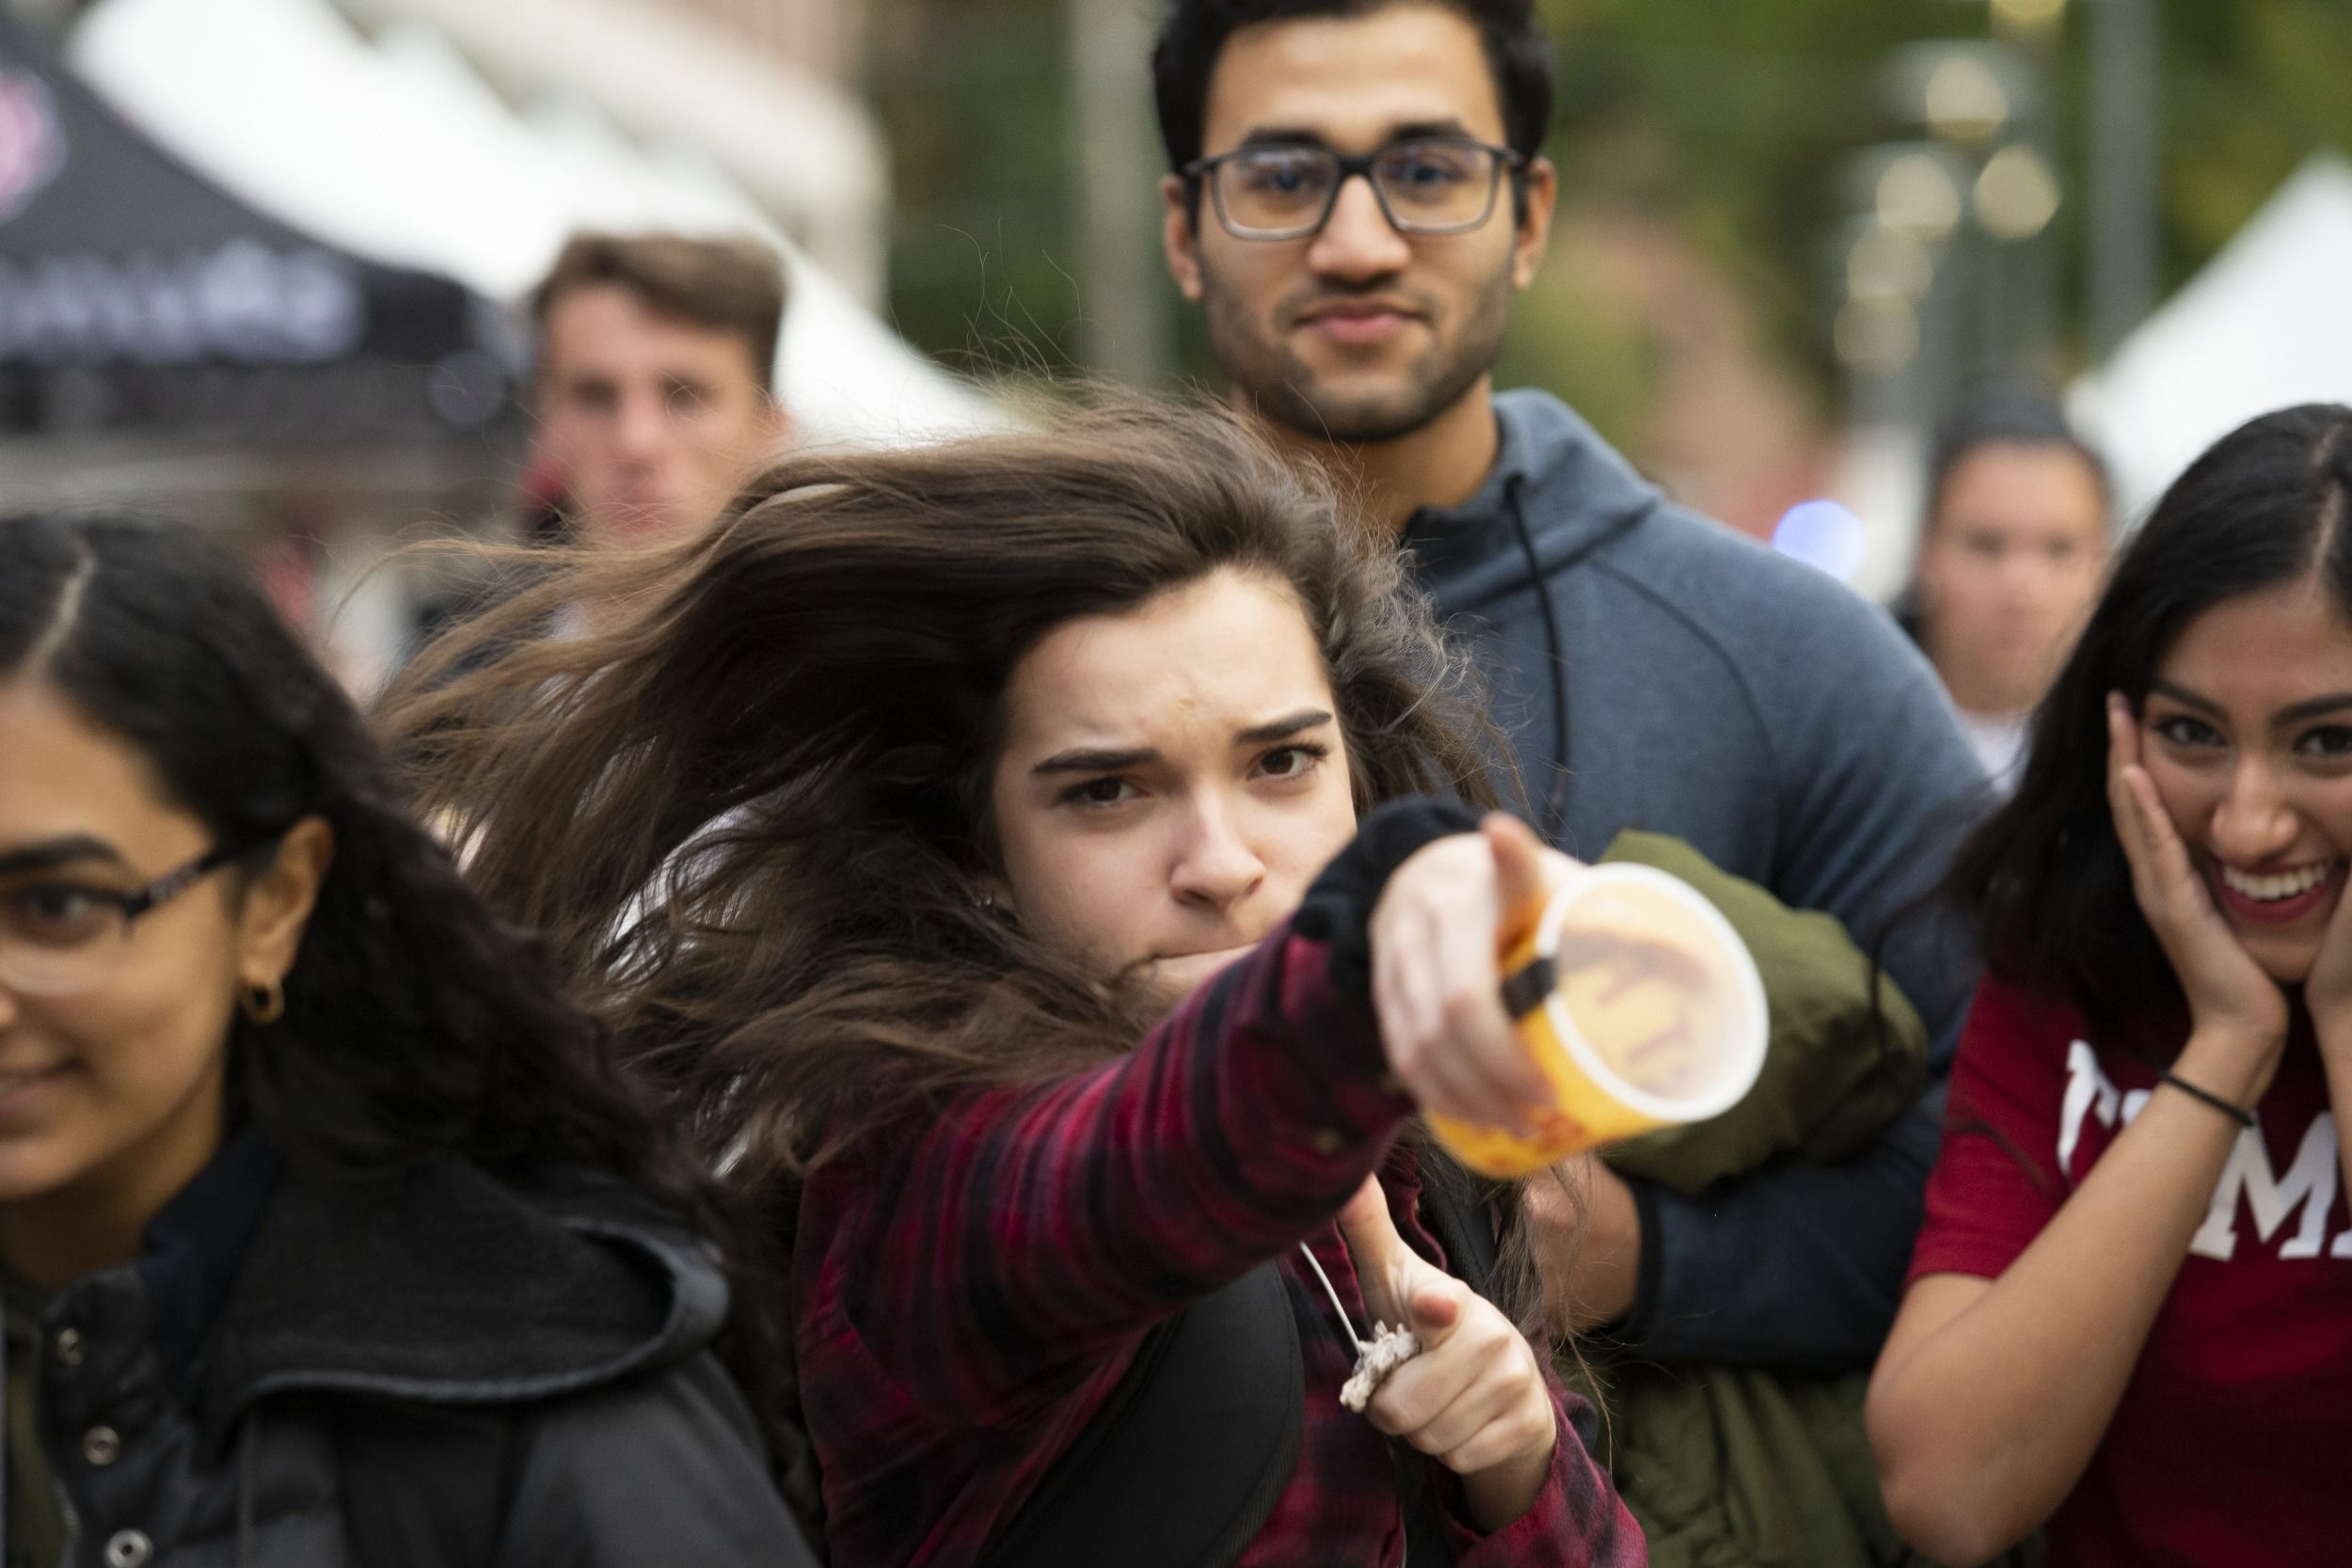 An annual celebration called Foxtoberfest on Temple's Main Campus.